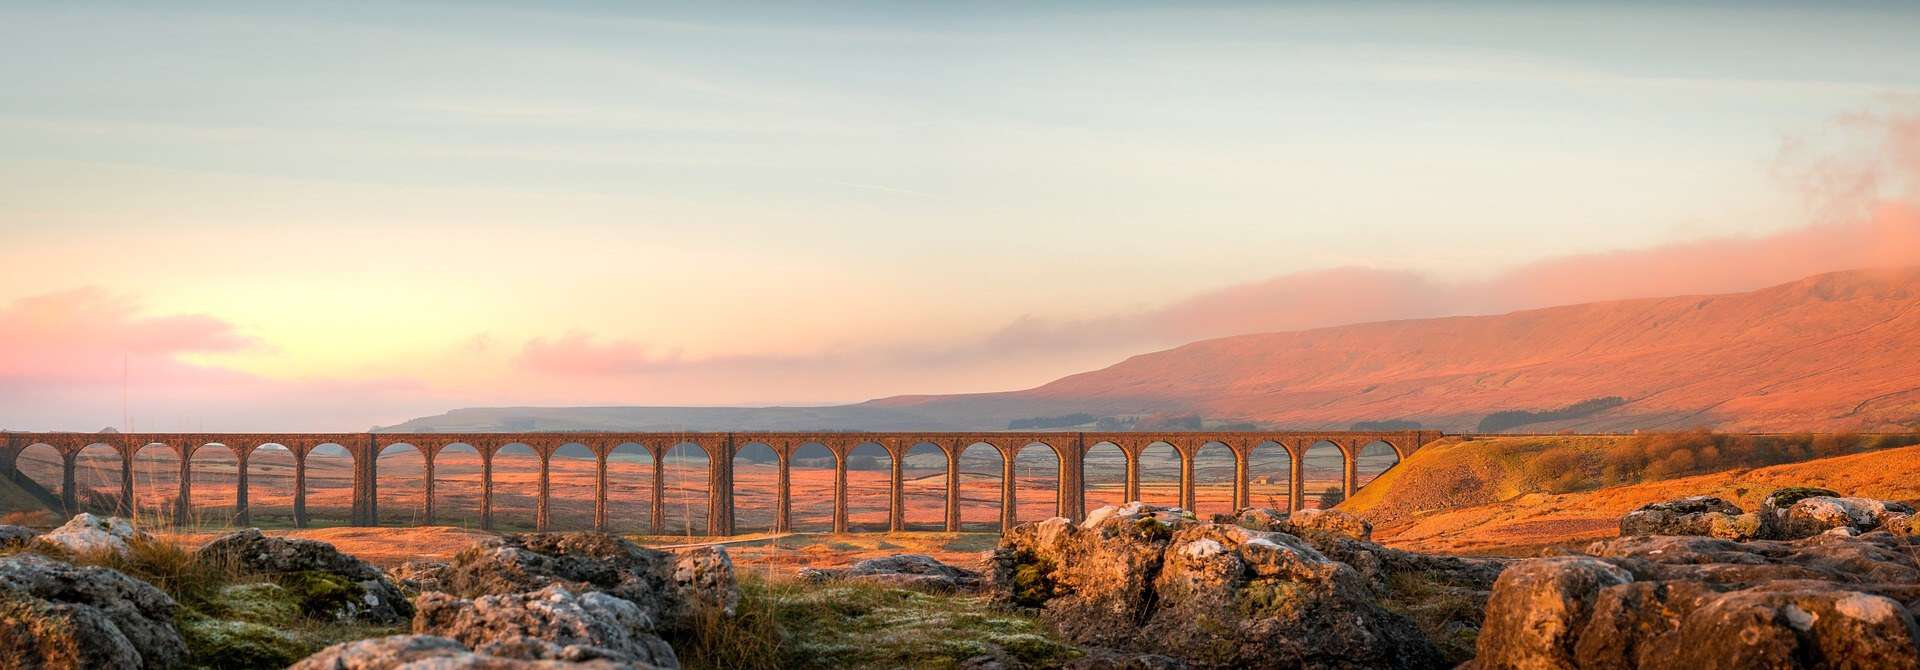 Best places to visit in England - atmospheric aqueduct